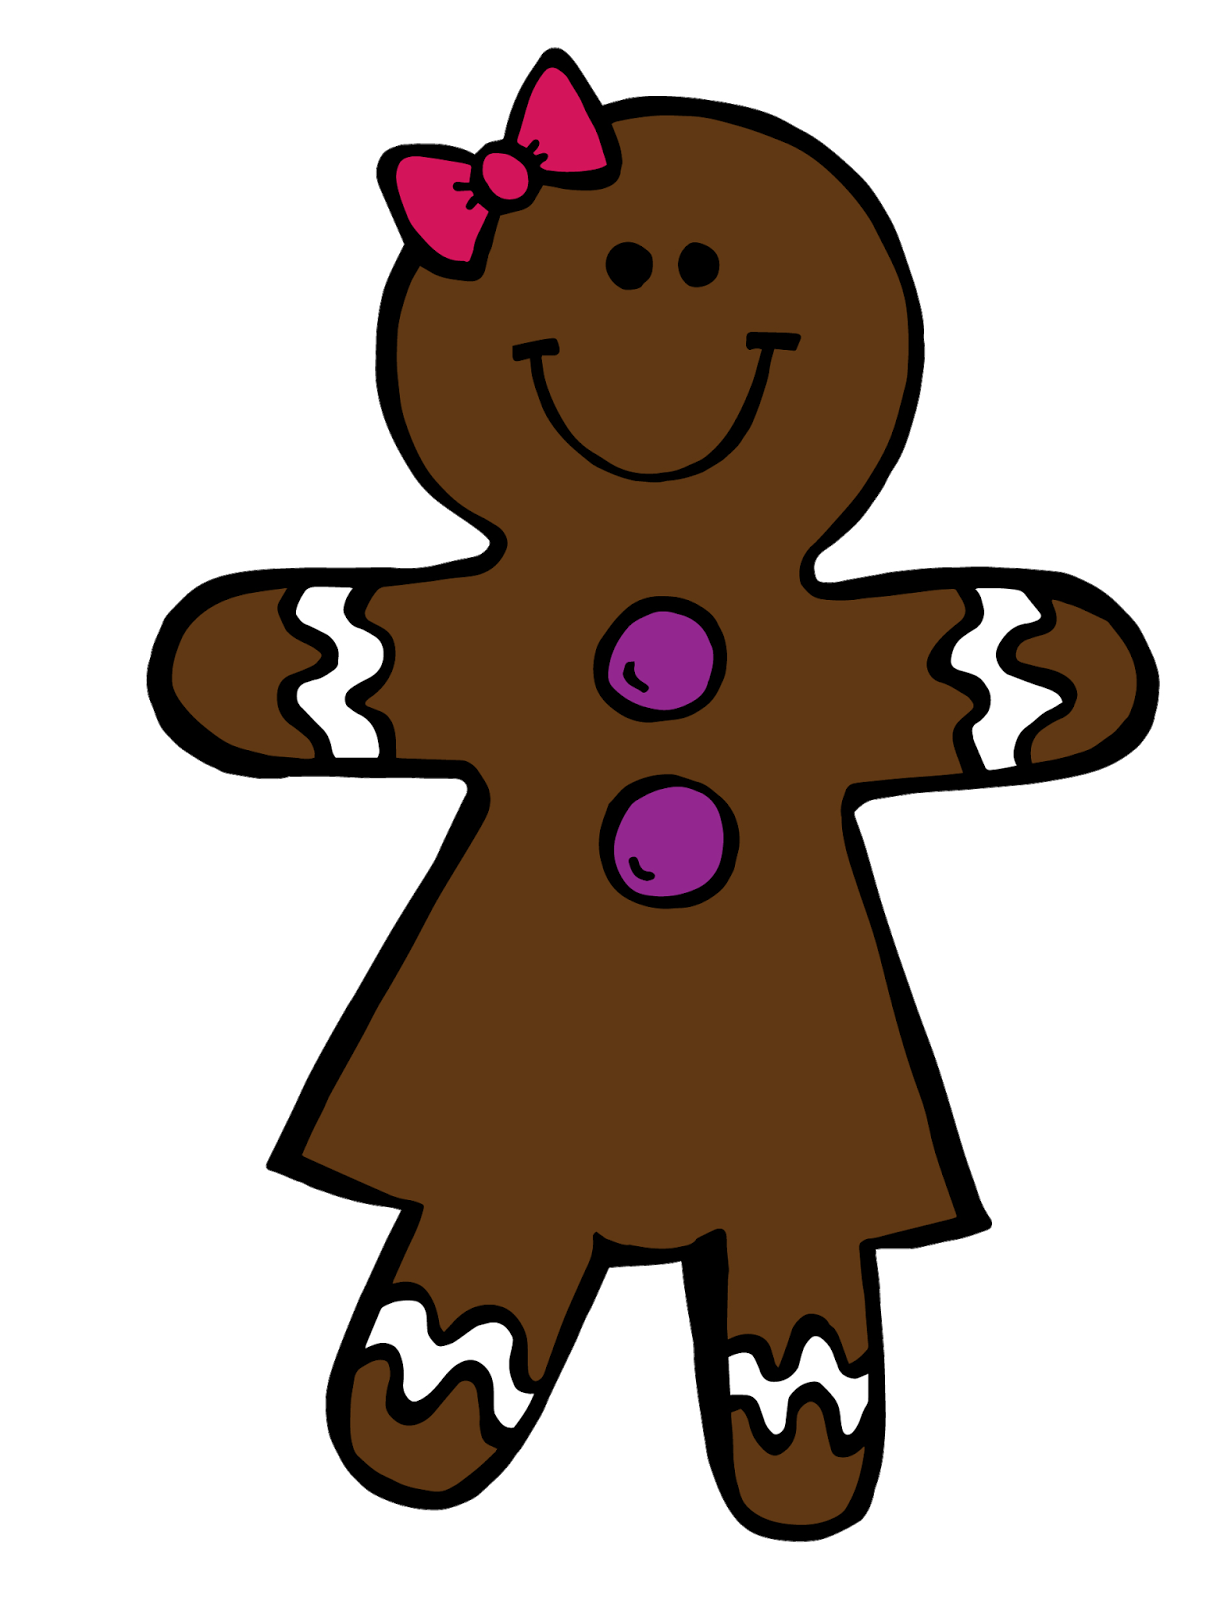 Gingerbread clipart clip art. The of teaching in